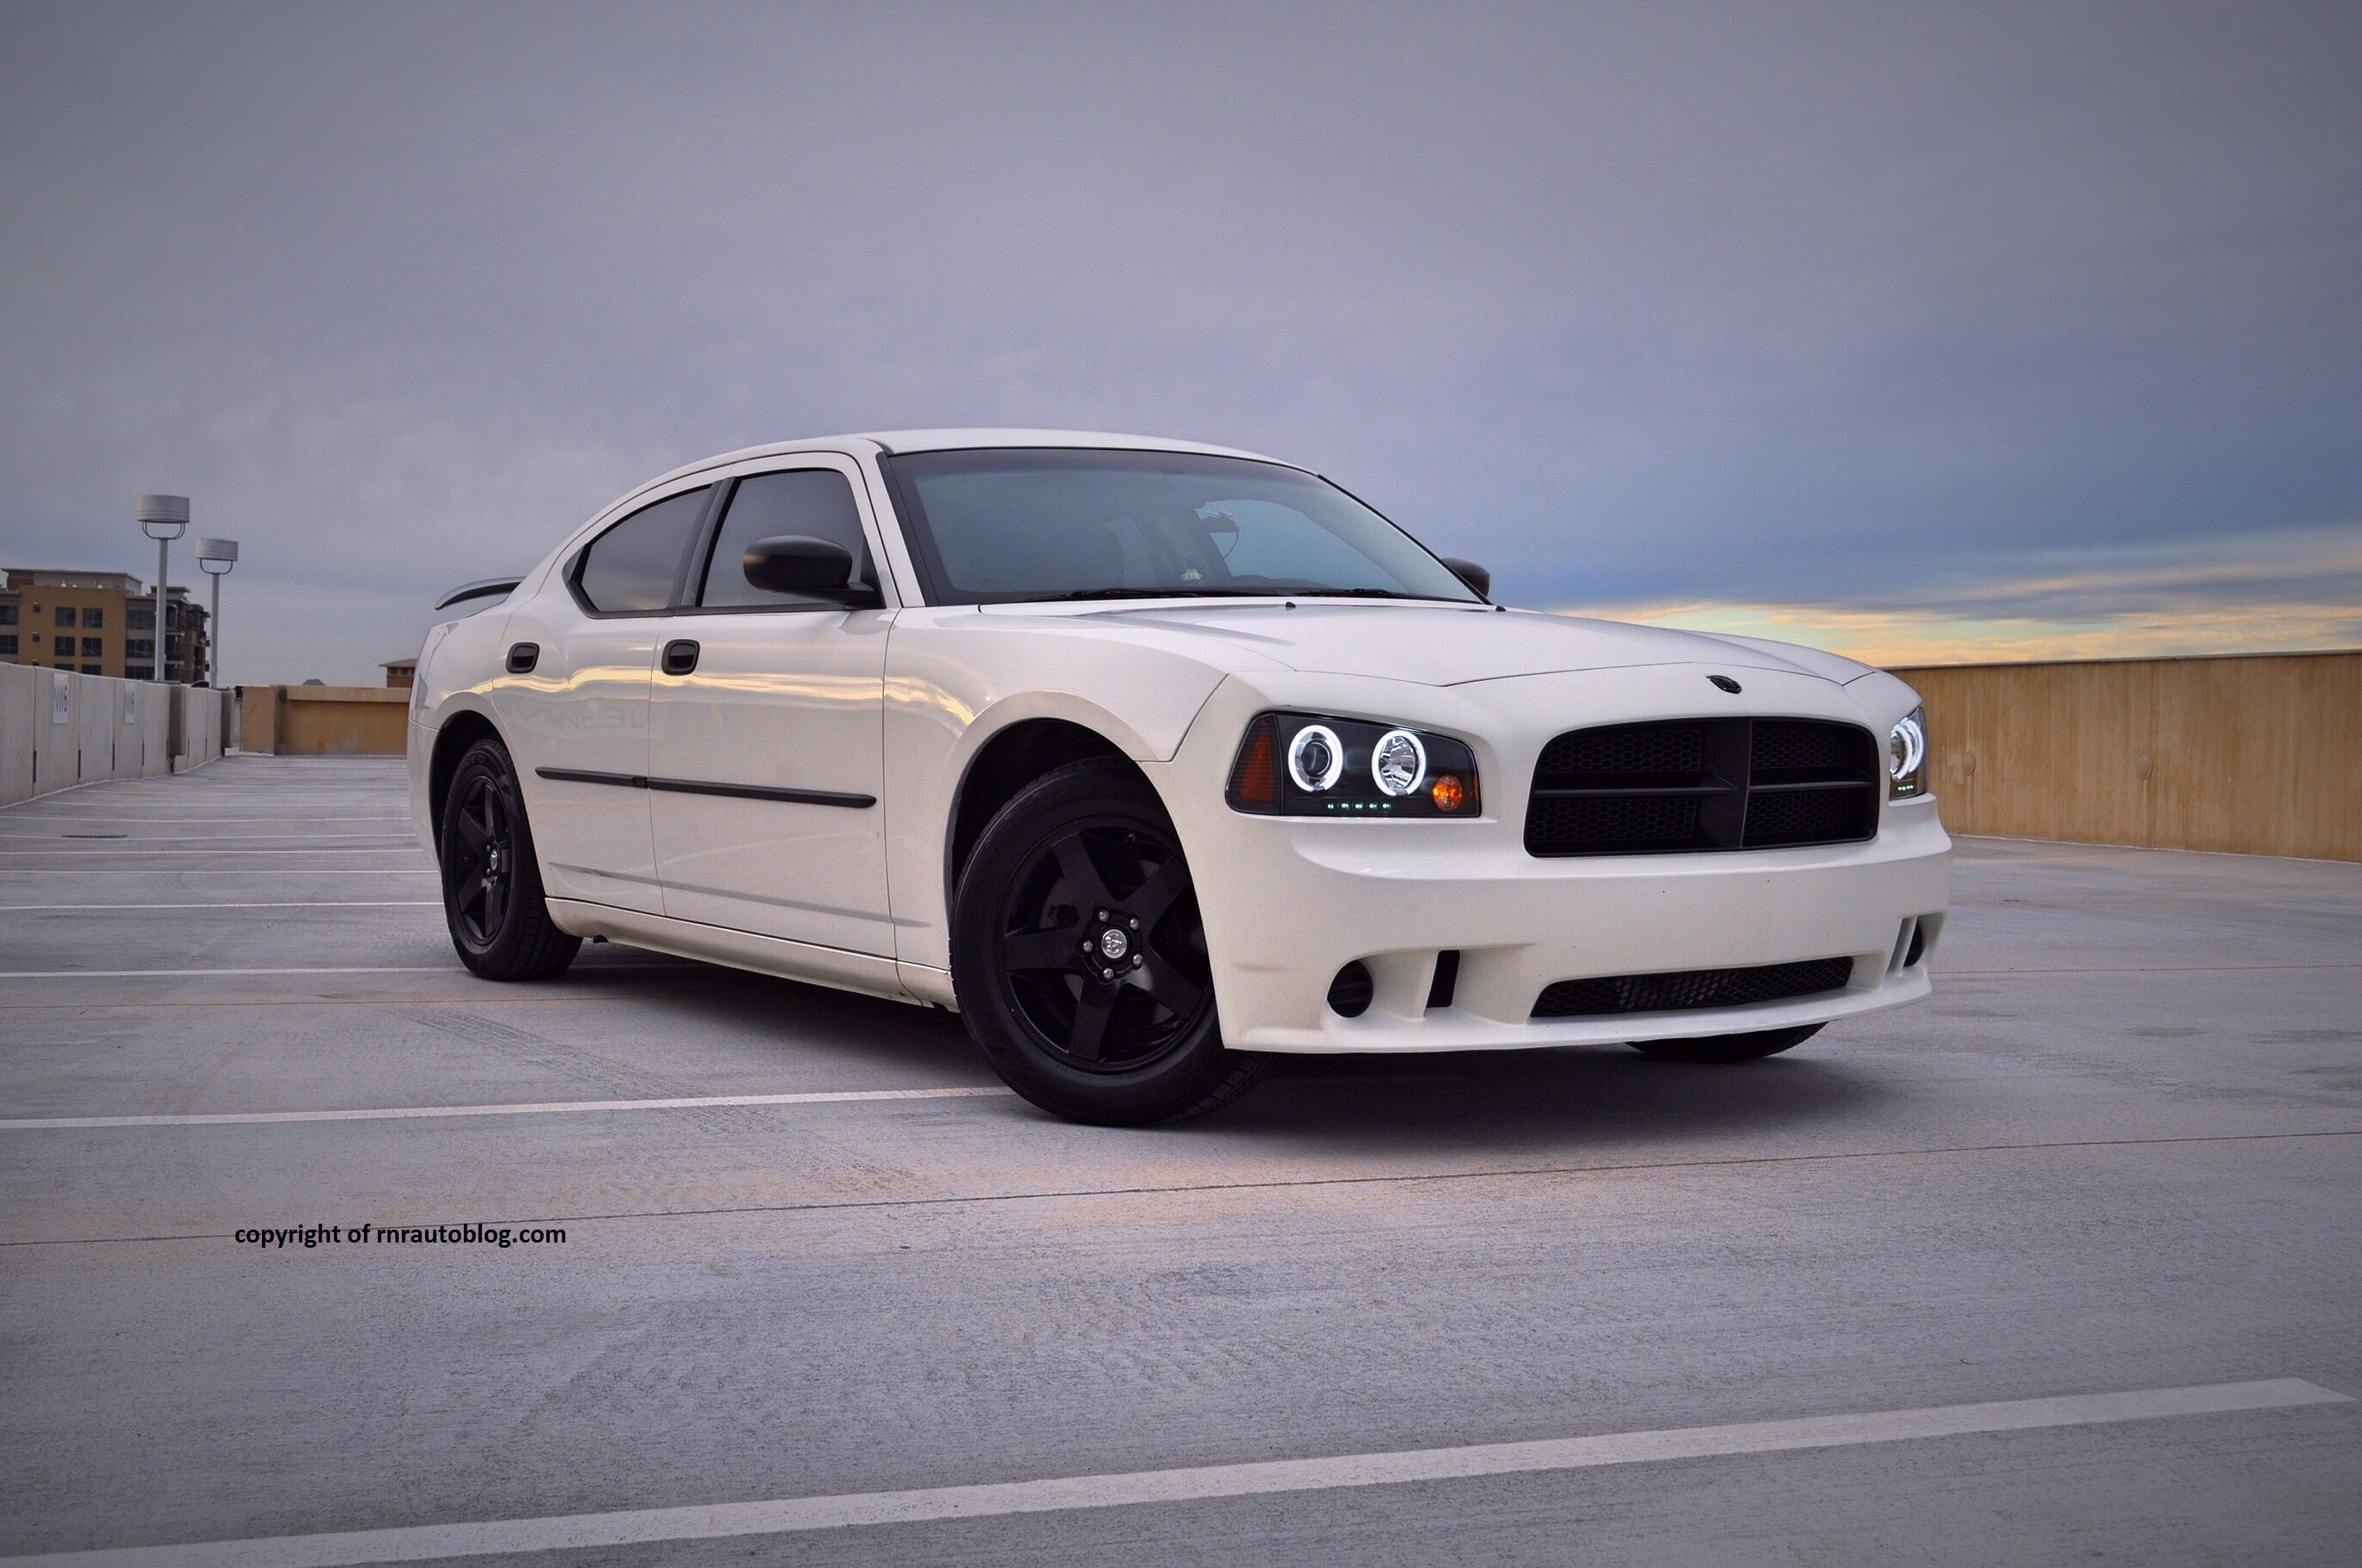 2009 dodge charger se review rnr automotive blog rh rnrautoblog com 2008 dodge charger manual book 2009 dodge charger owners manual